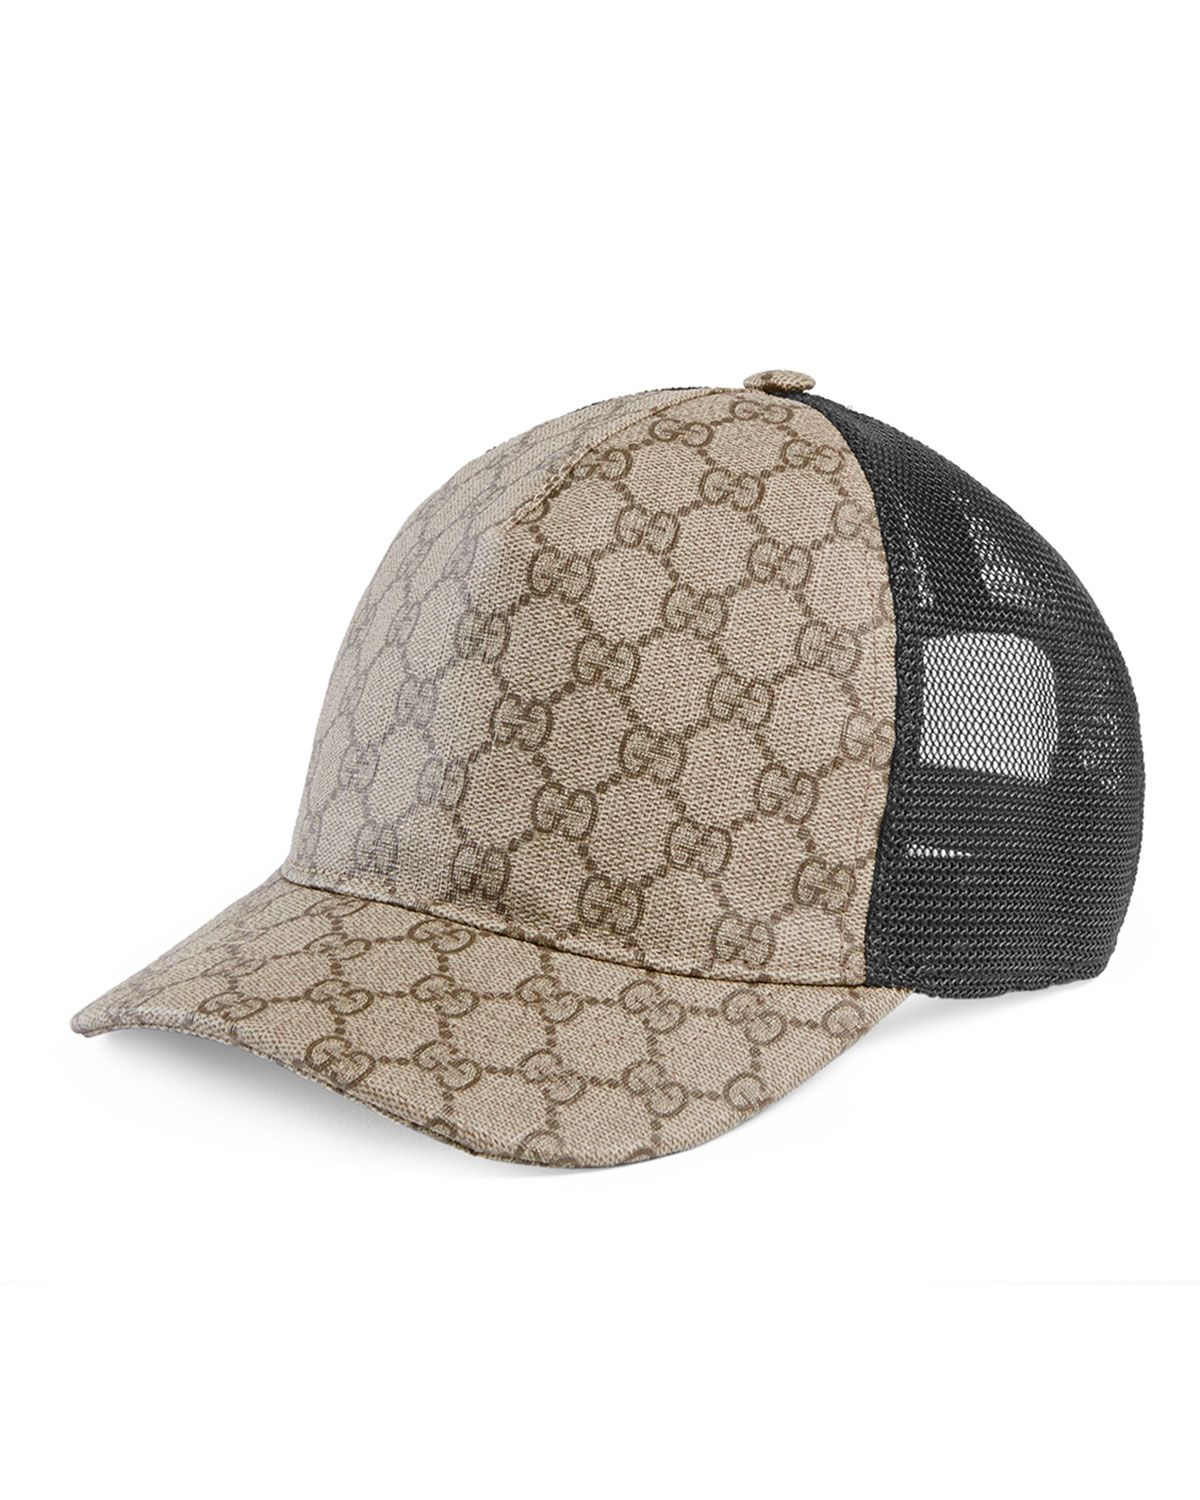 43fe75b7 Gg/mesh baseball hat beige in 2019 | *Clothing Accessories > Hats ...